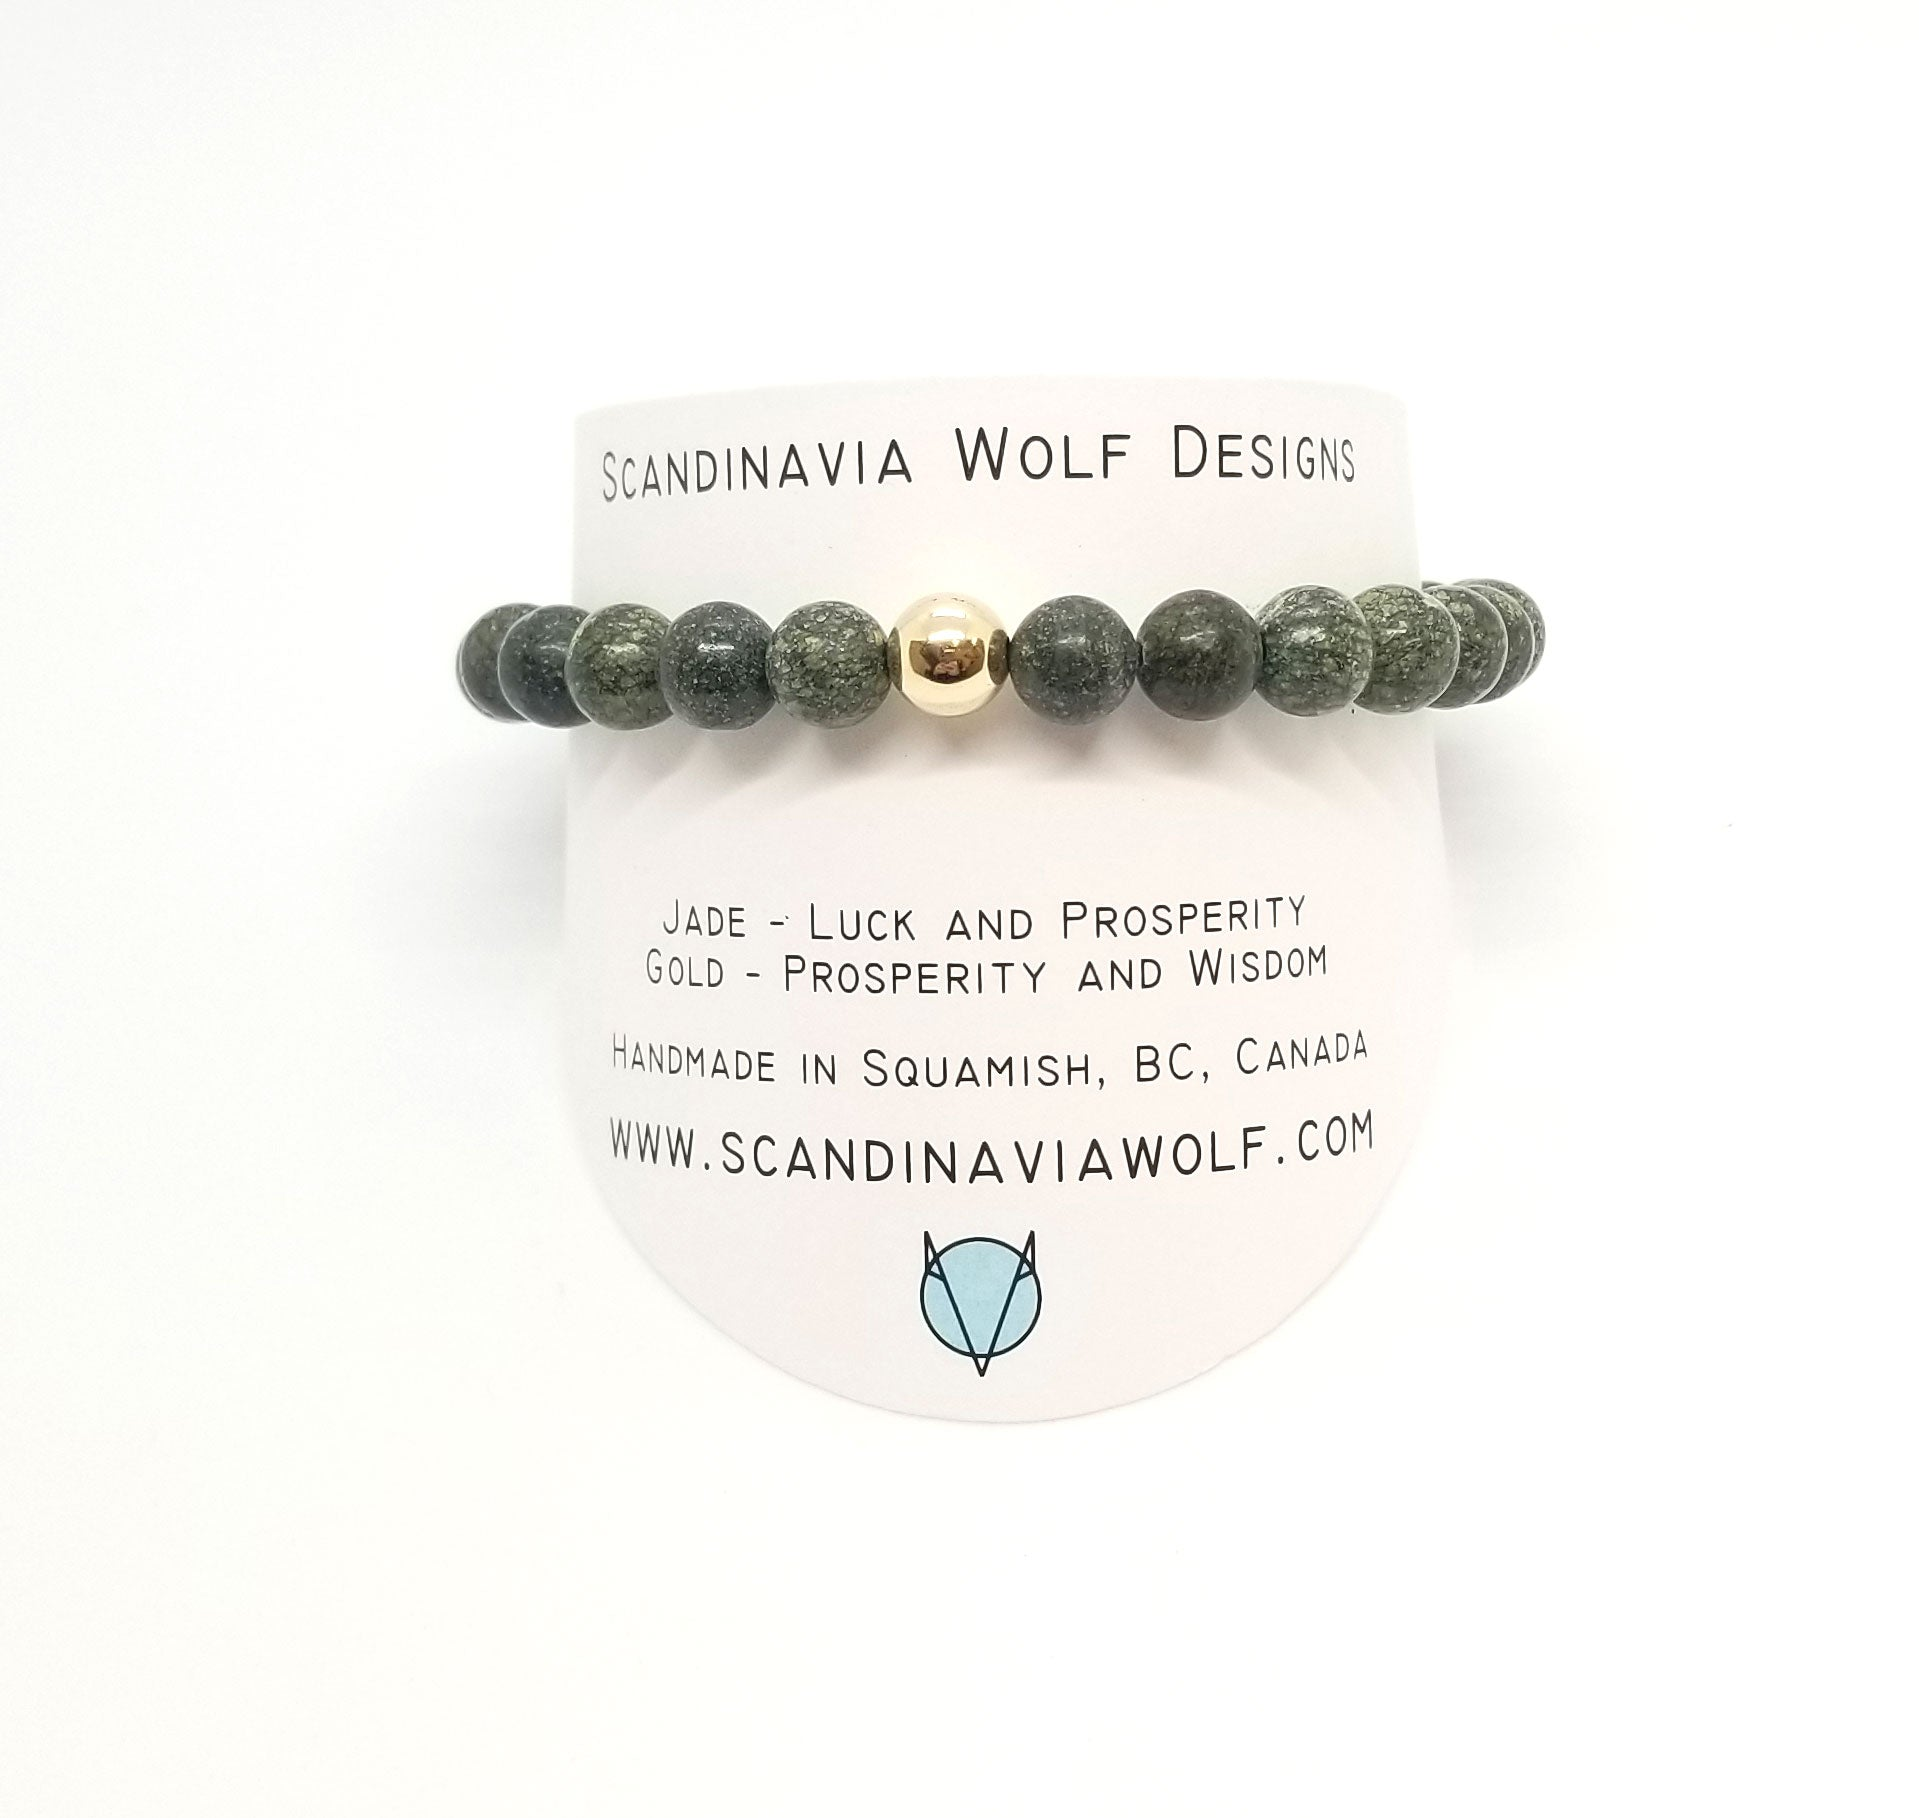 8mm Russian Jade With Gold Bracelet